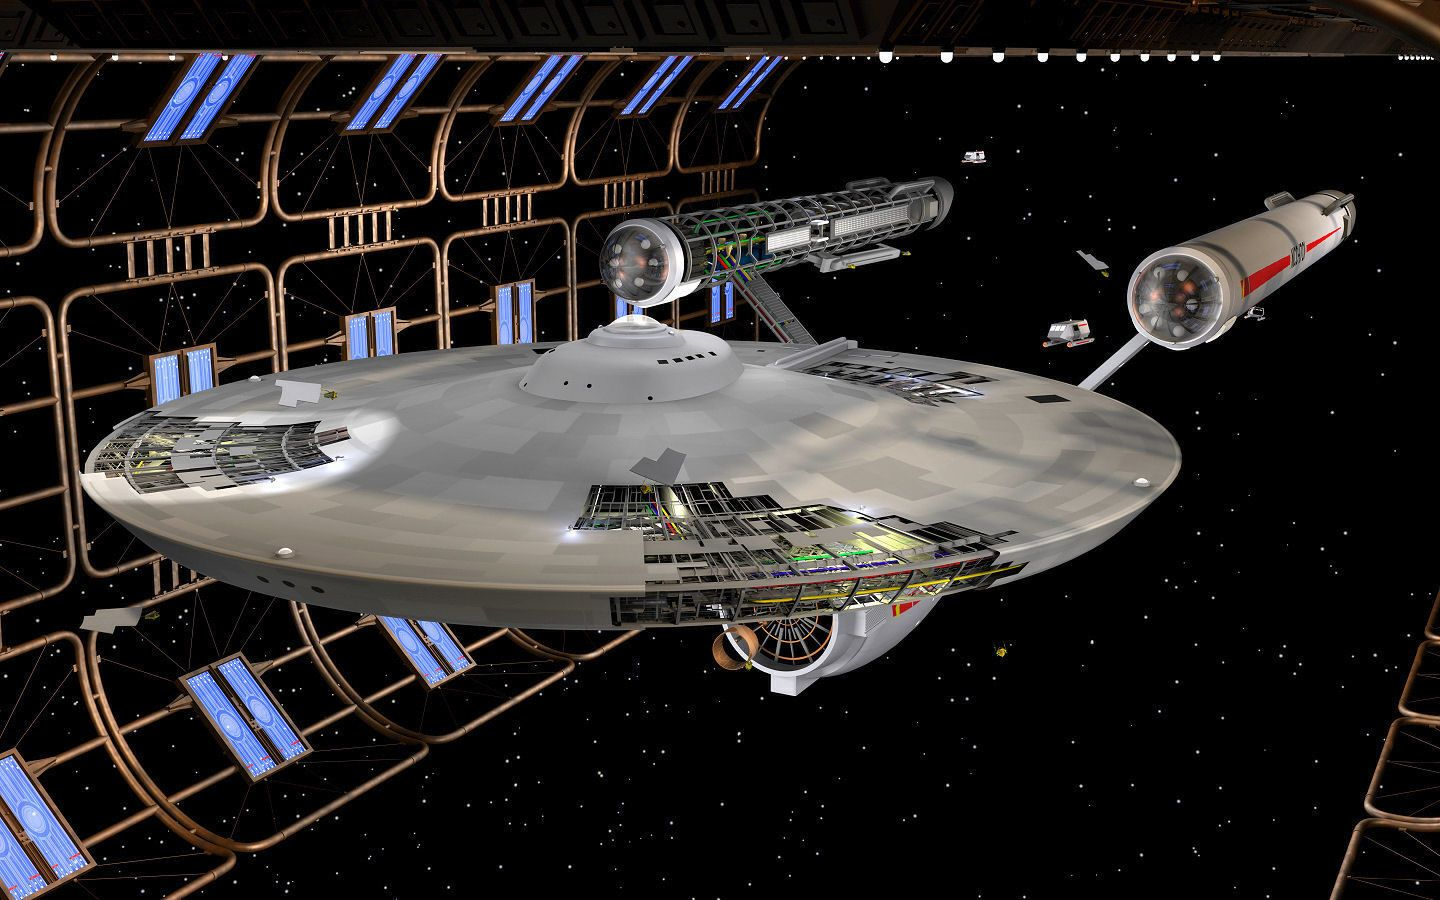 Constitution-class USS Enterprise (NCC-1701) in Spacedock for battle damage repairs